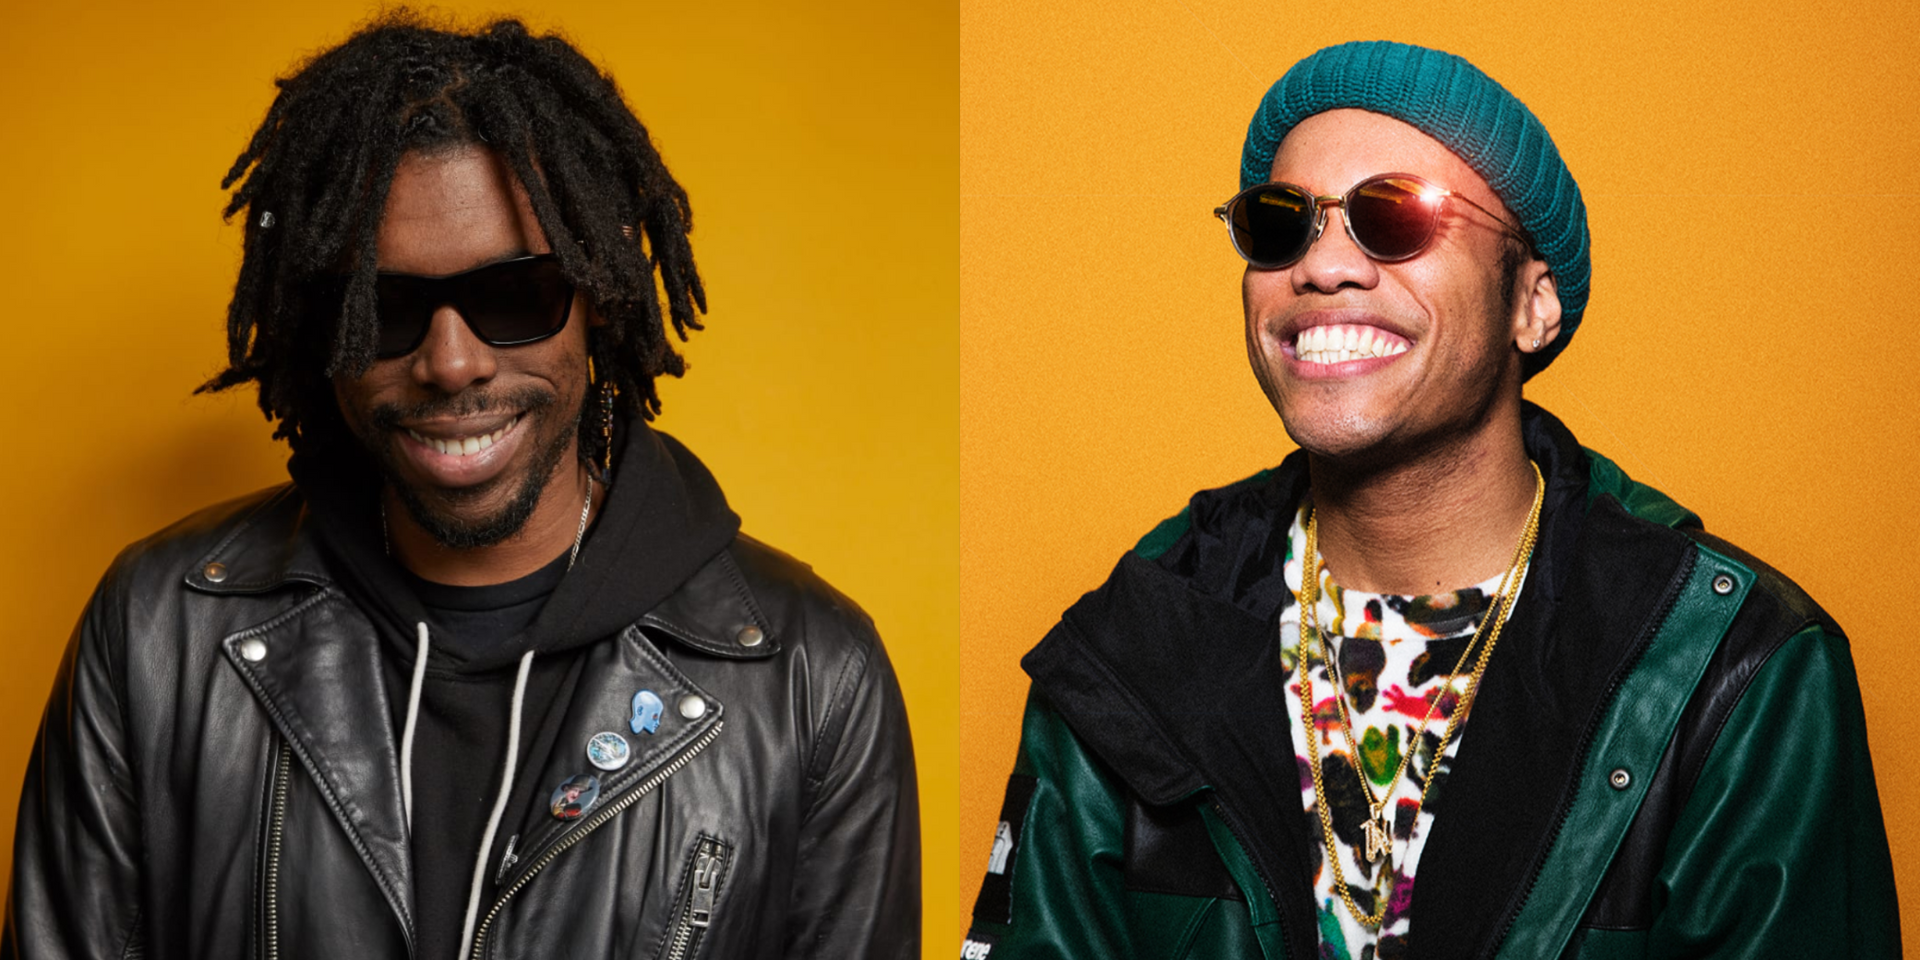 Flying Lotus releases new single with Anderson .Paak, 'More' – Listen